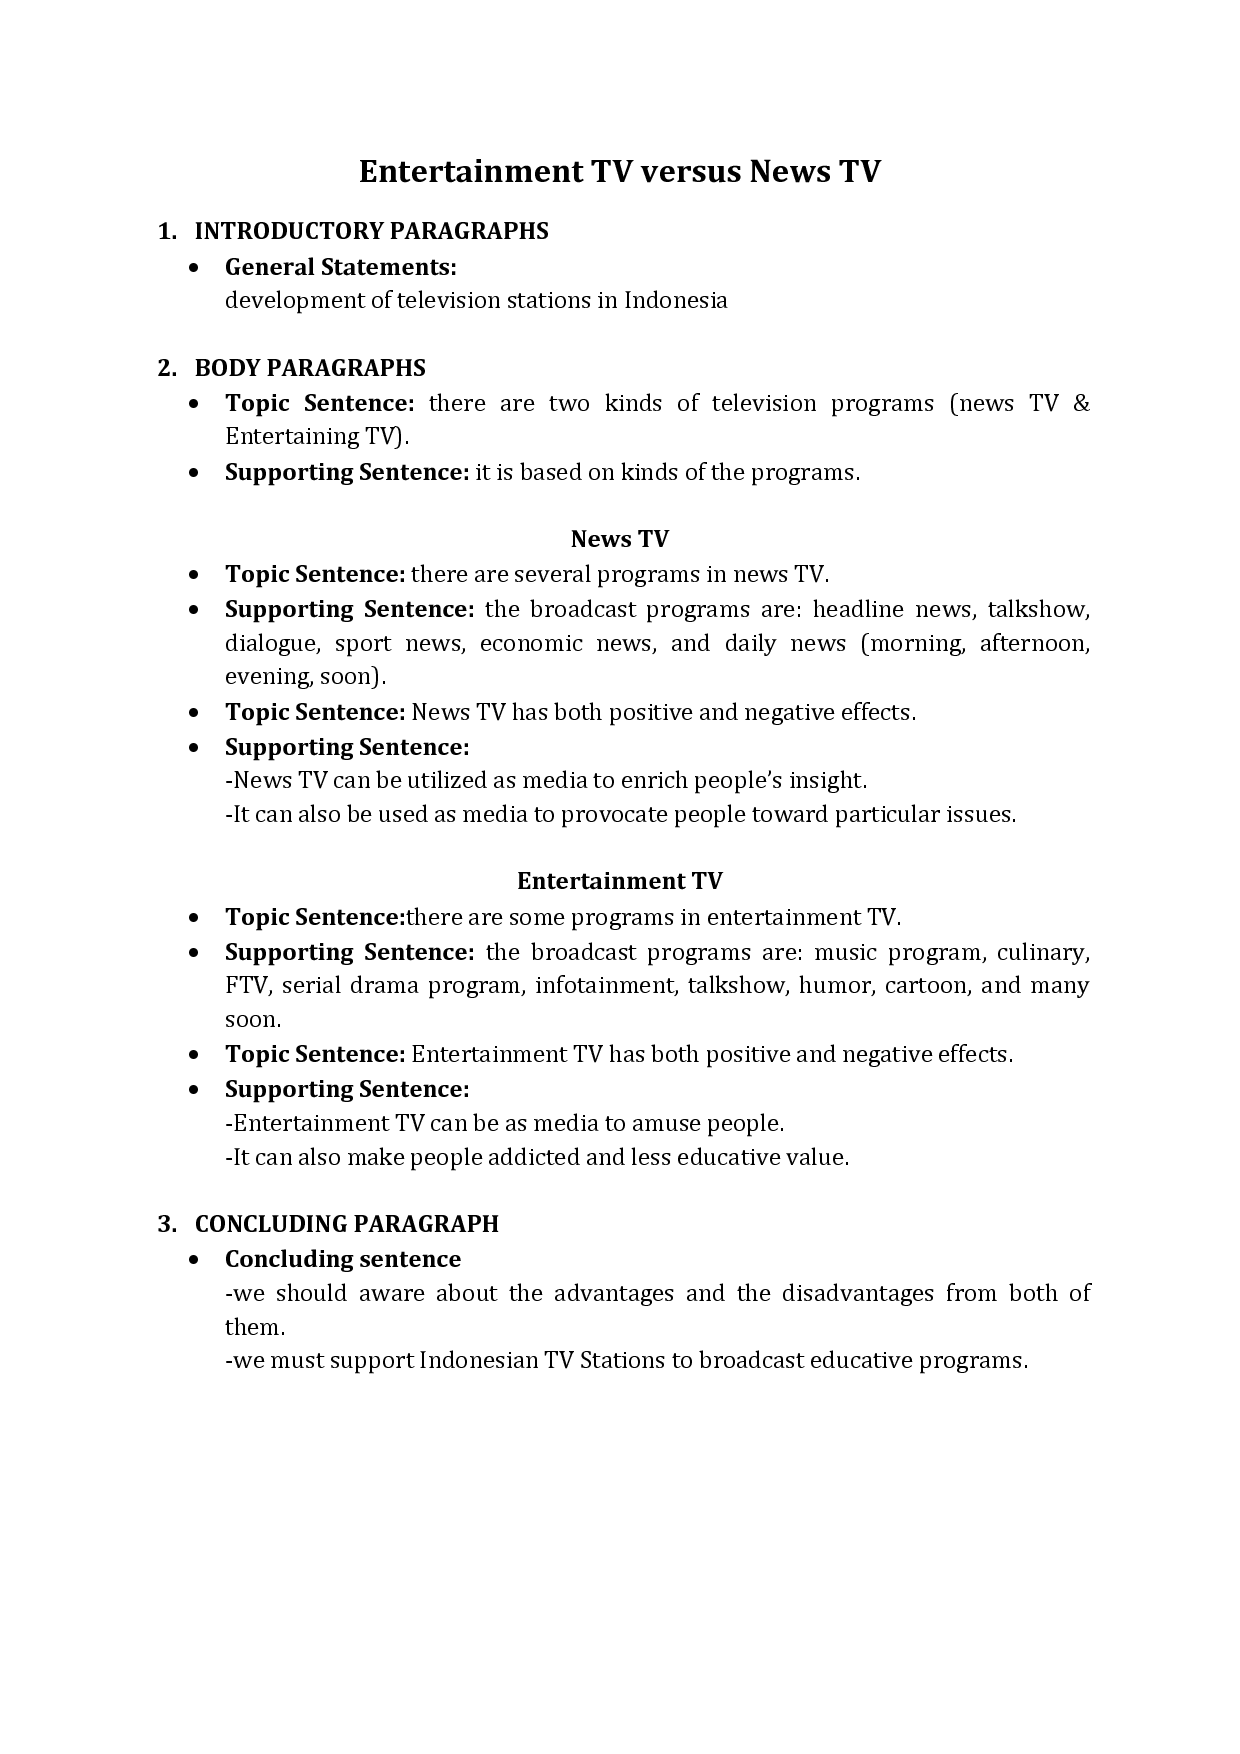 005 Fbunmxinib How To Write An Essay Outline Excellent In Mla Format College Full